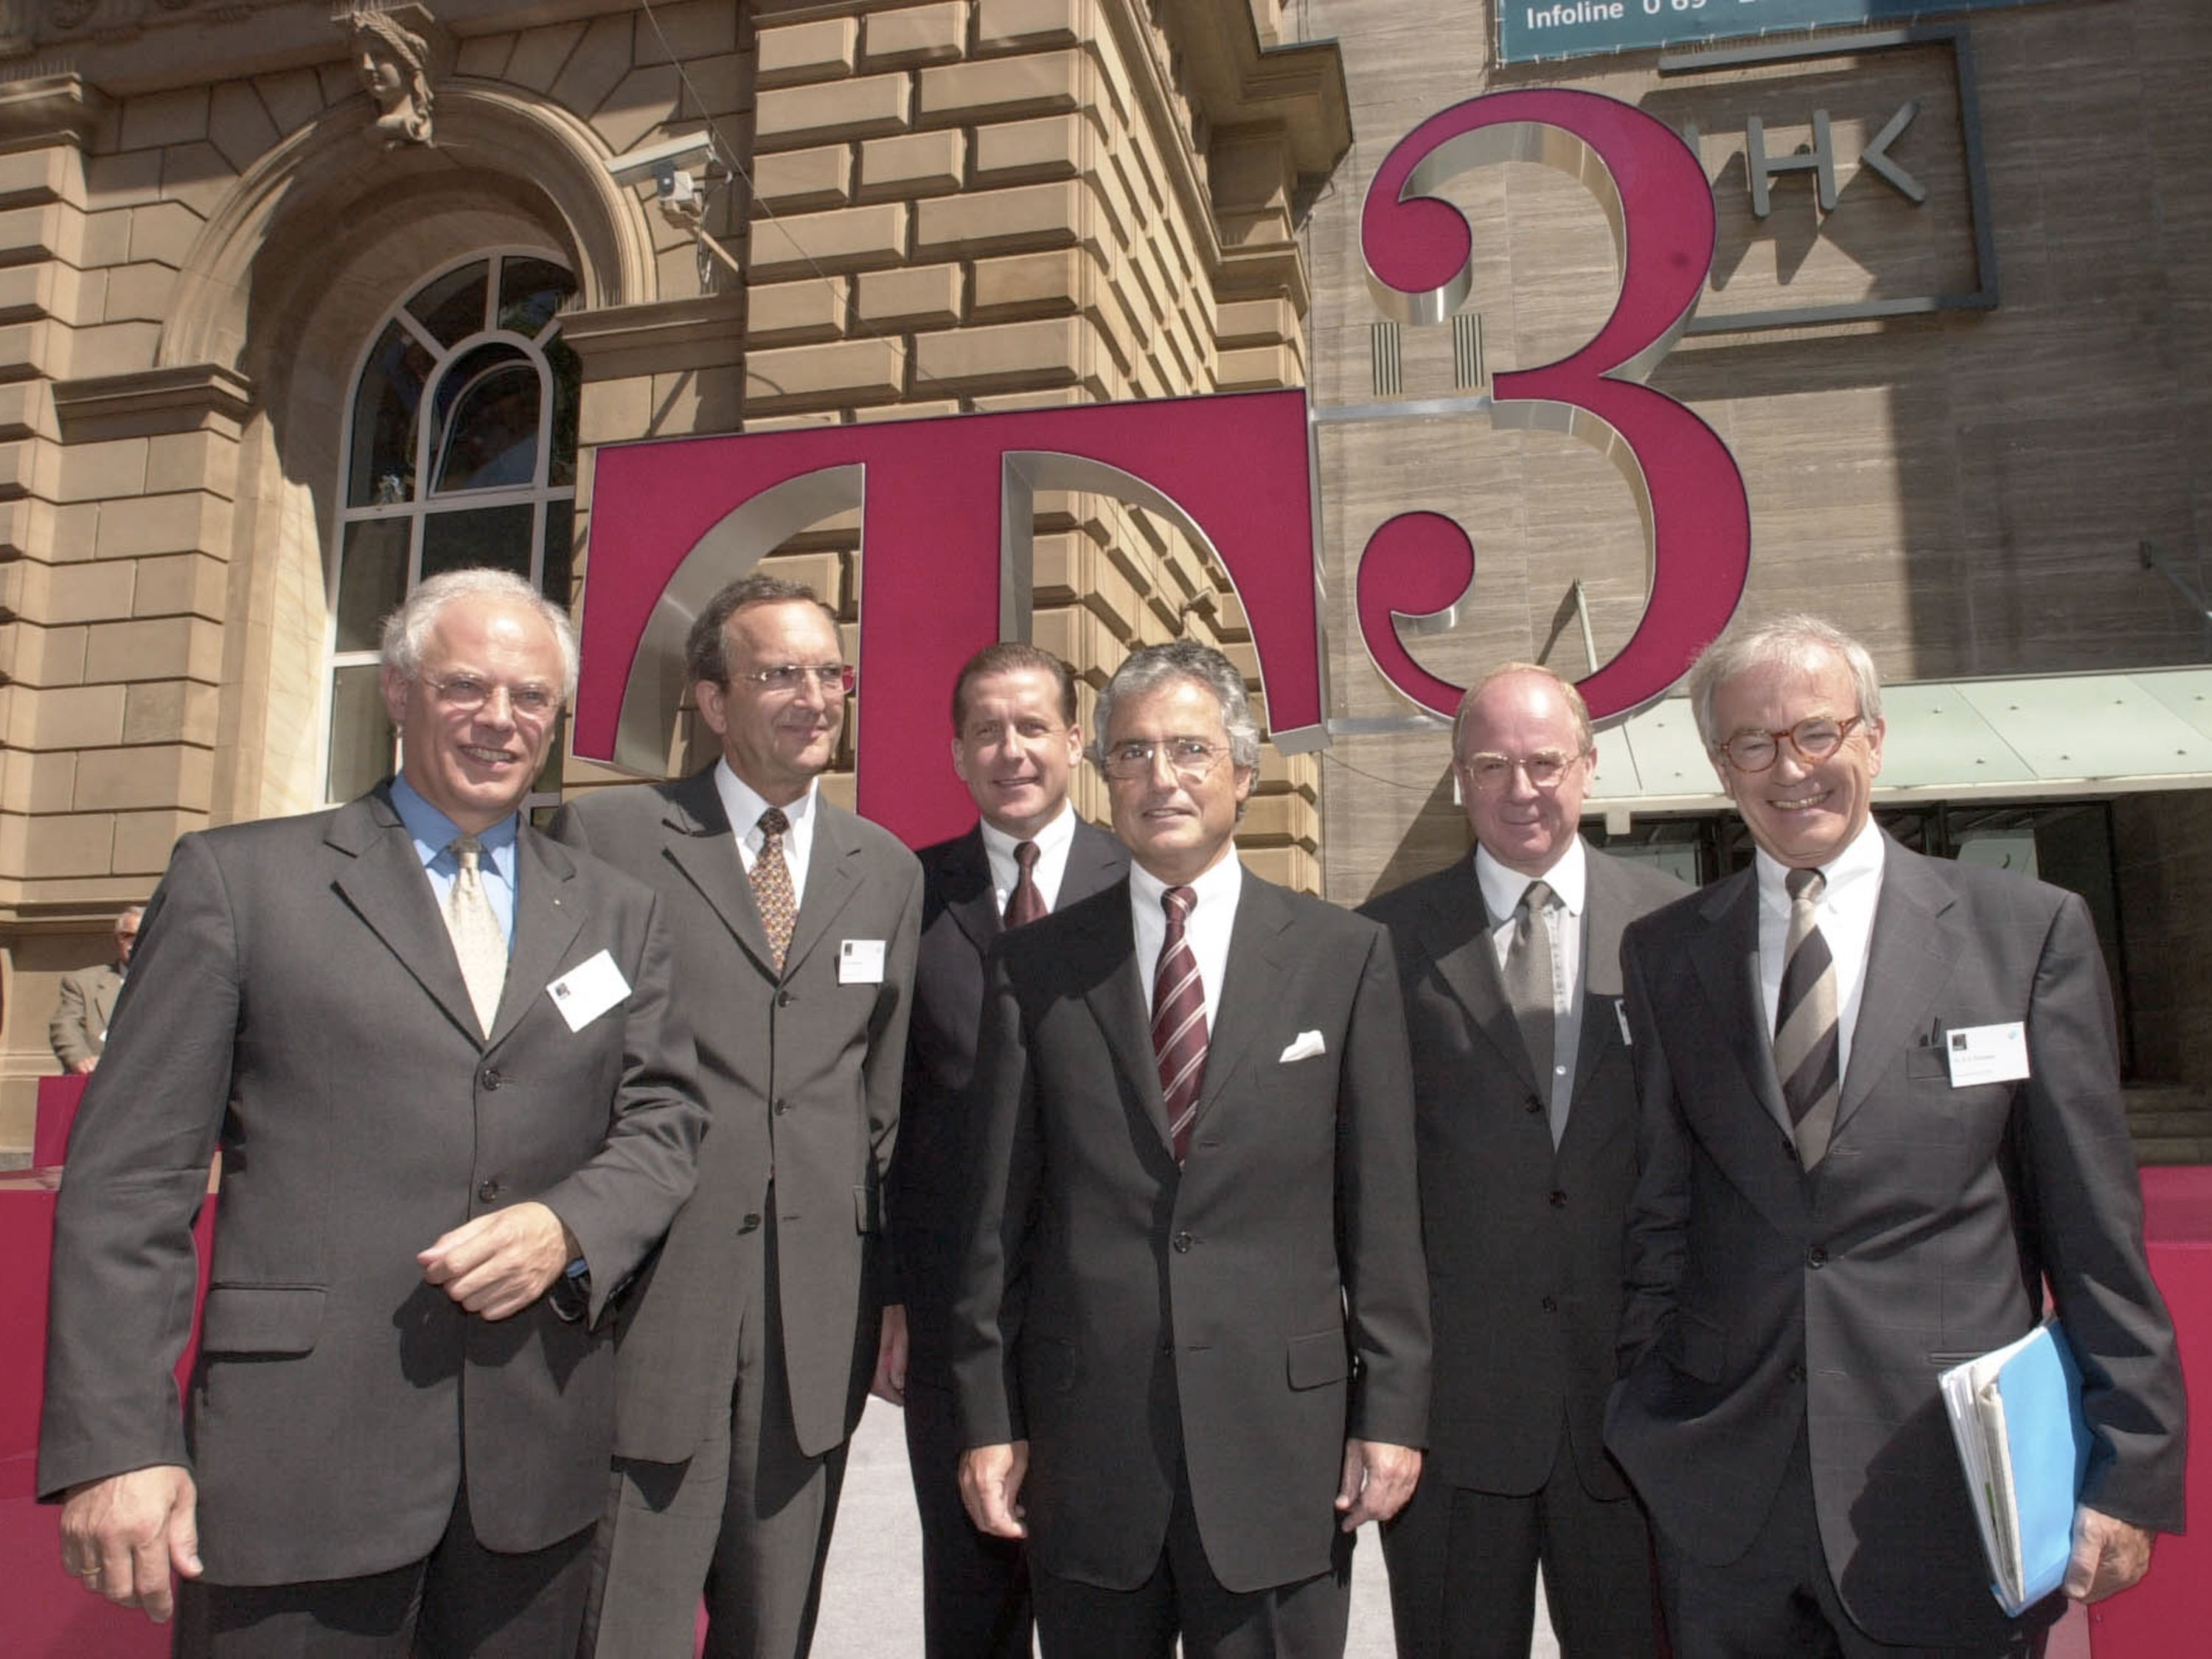 Deutsche Telekom's third IPO takes place soon after the first two IPOs, in the year 2000.